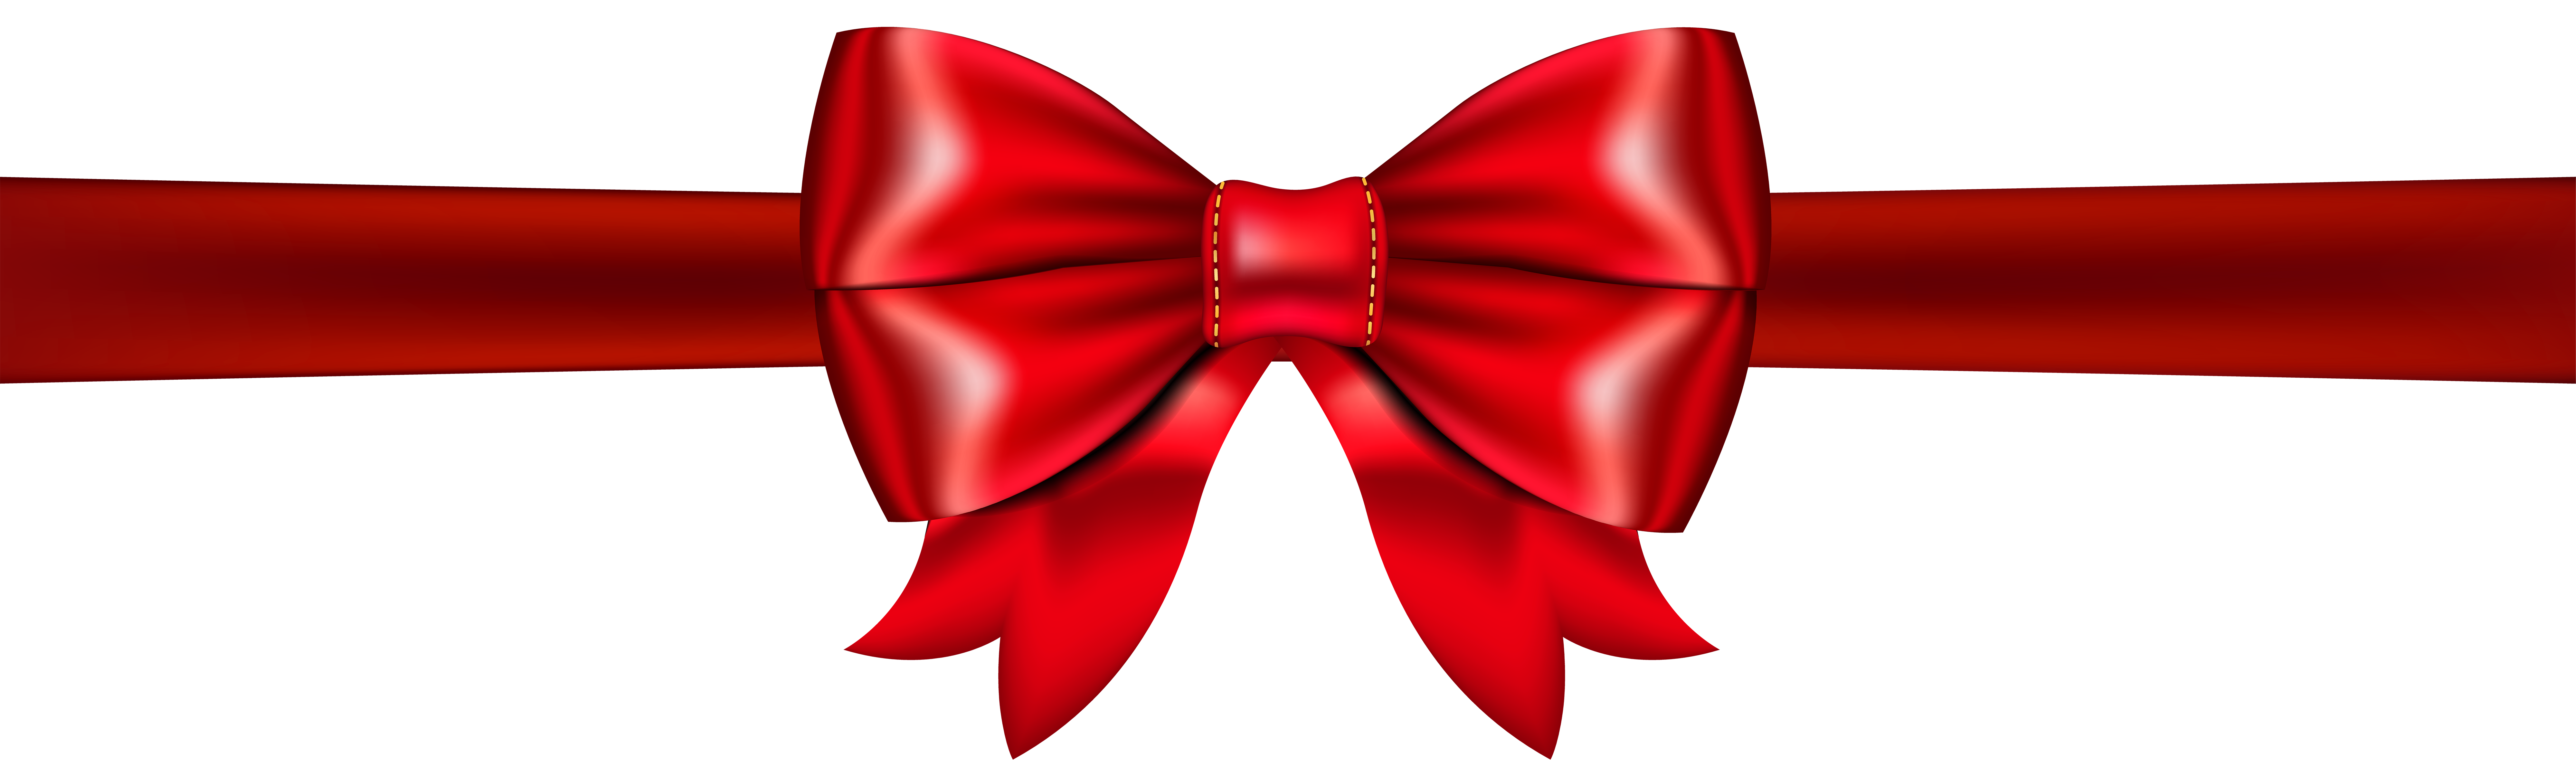 Red Deco Bow Ribbon Png Transparent Image Gallery Yopriceville High Quality Images And Transparent Png Free Clipart Ribbon Png Bows Free Clip Art